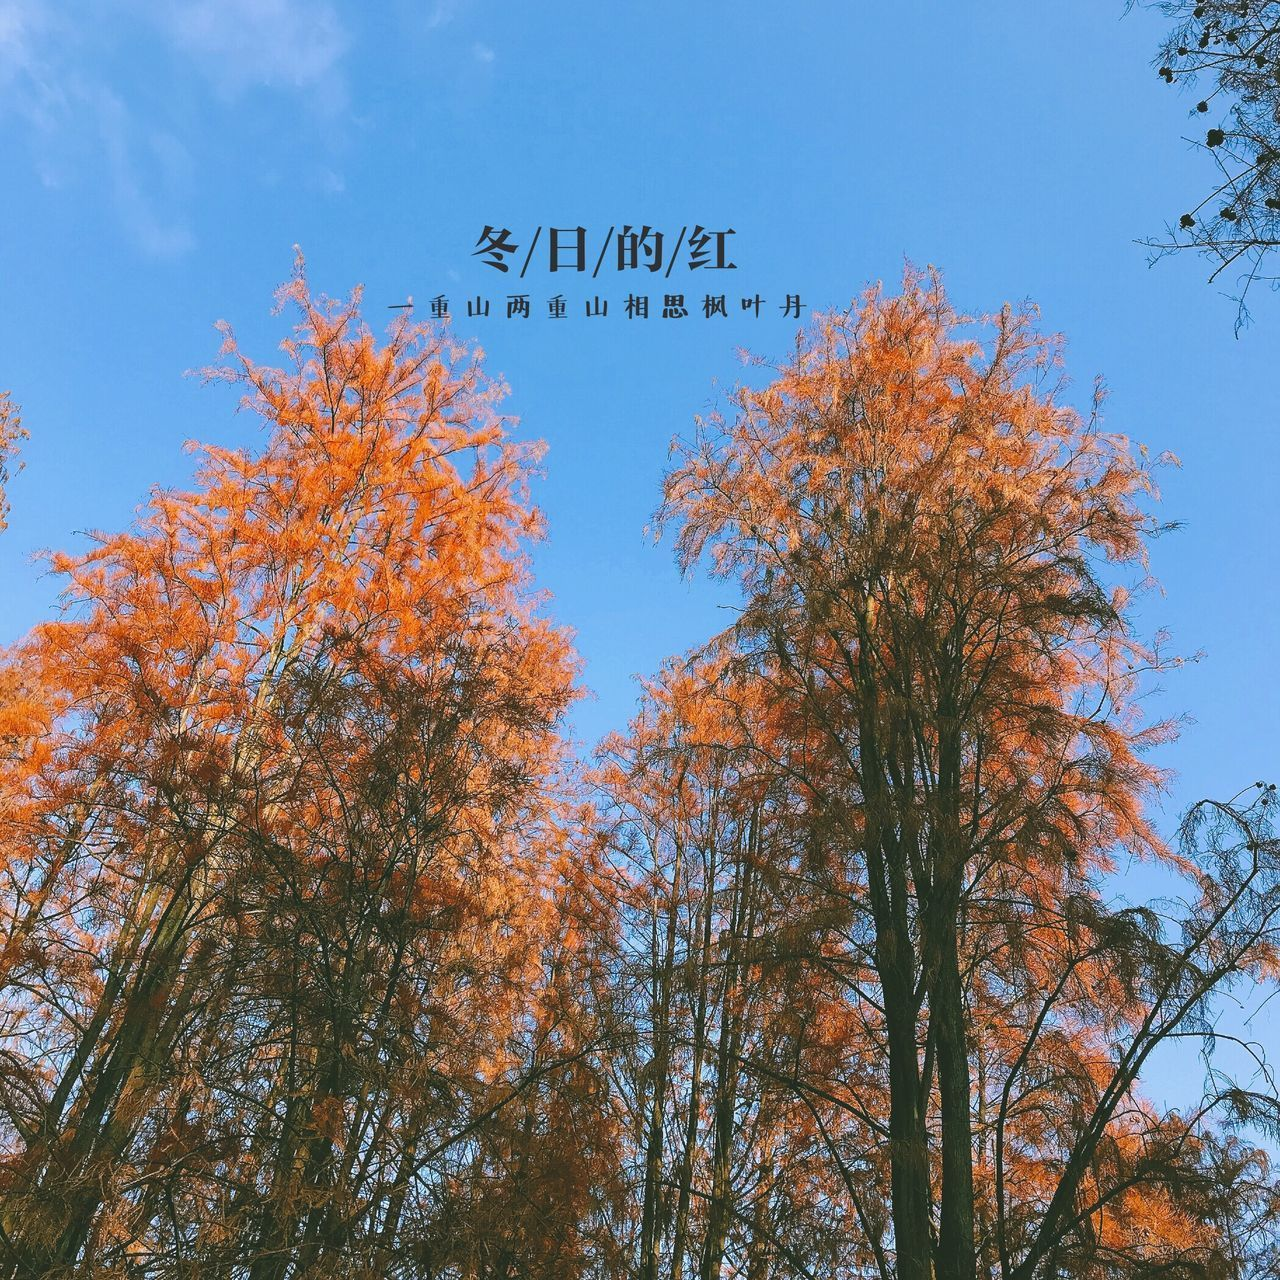 tree, low angle view, autumn, change, text, growth, day, outdoors, branch, no people, nature, sky, leaf, beauty in nature